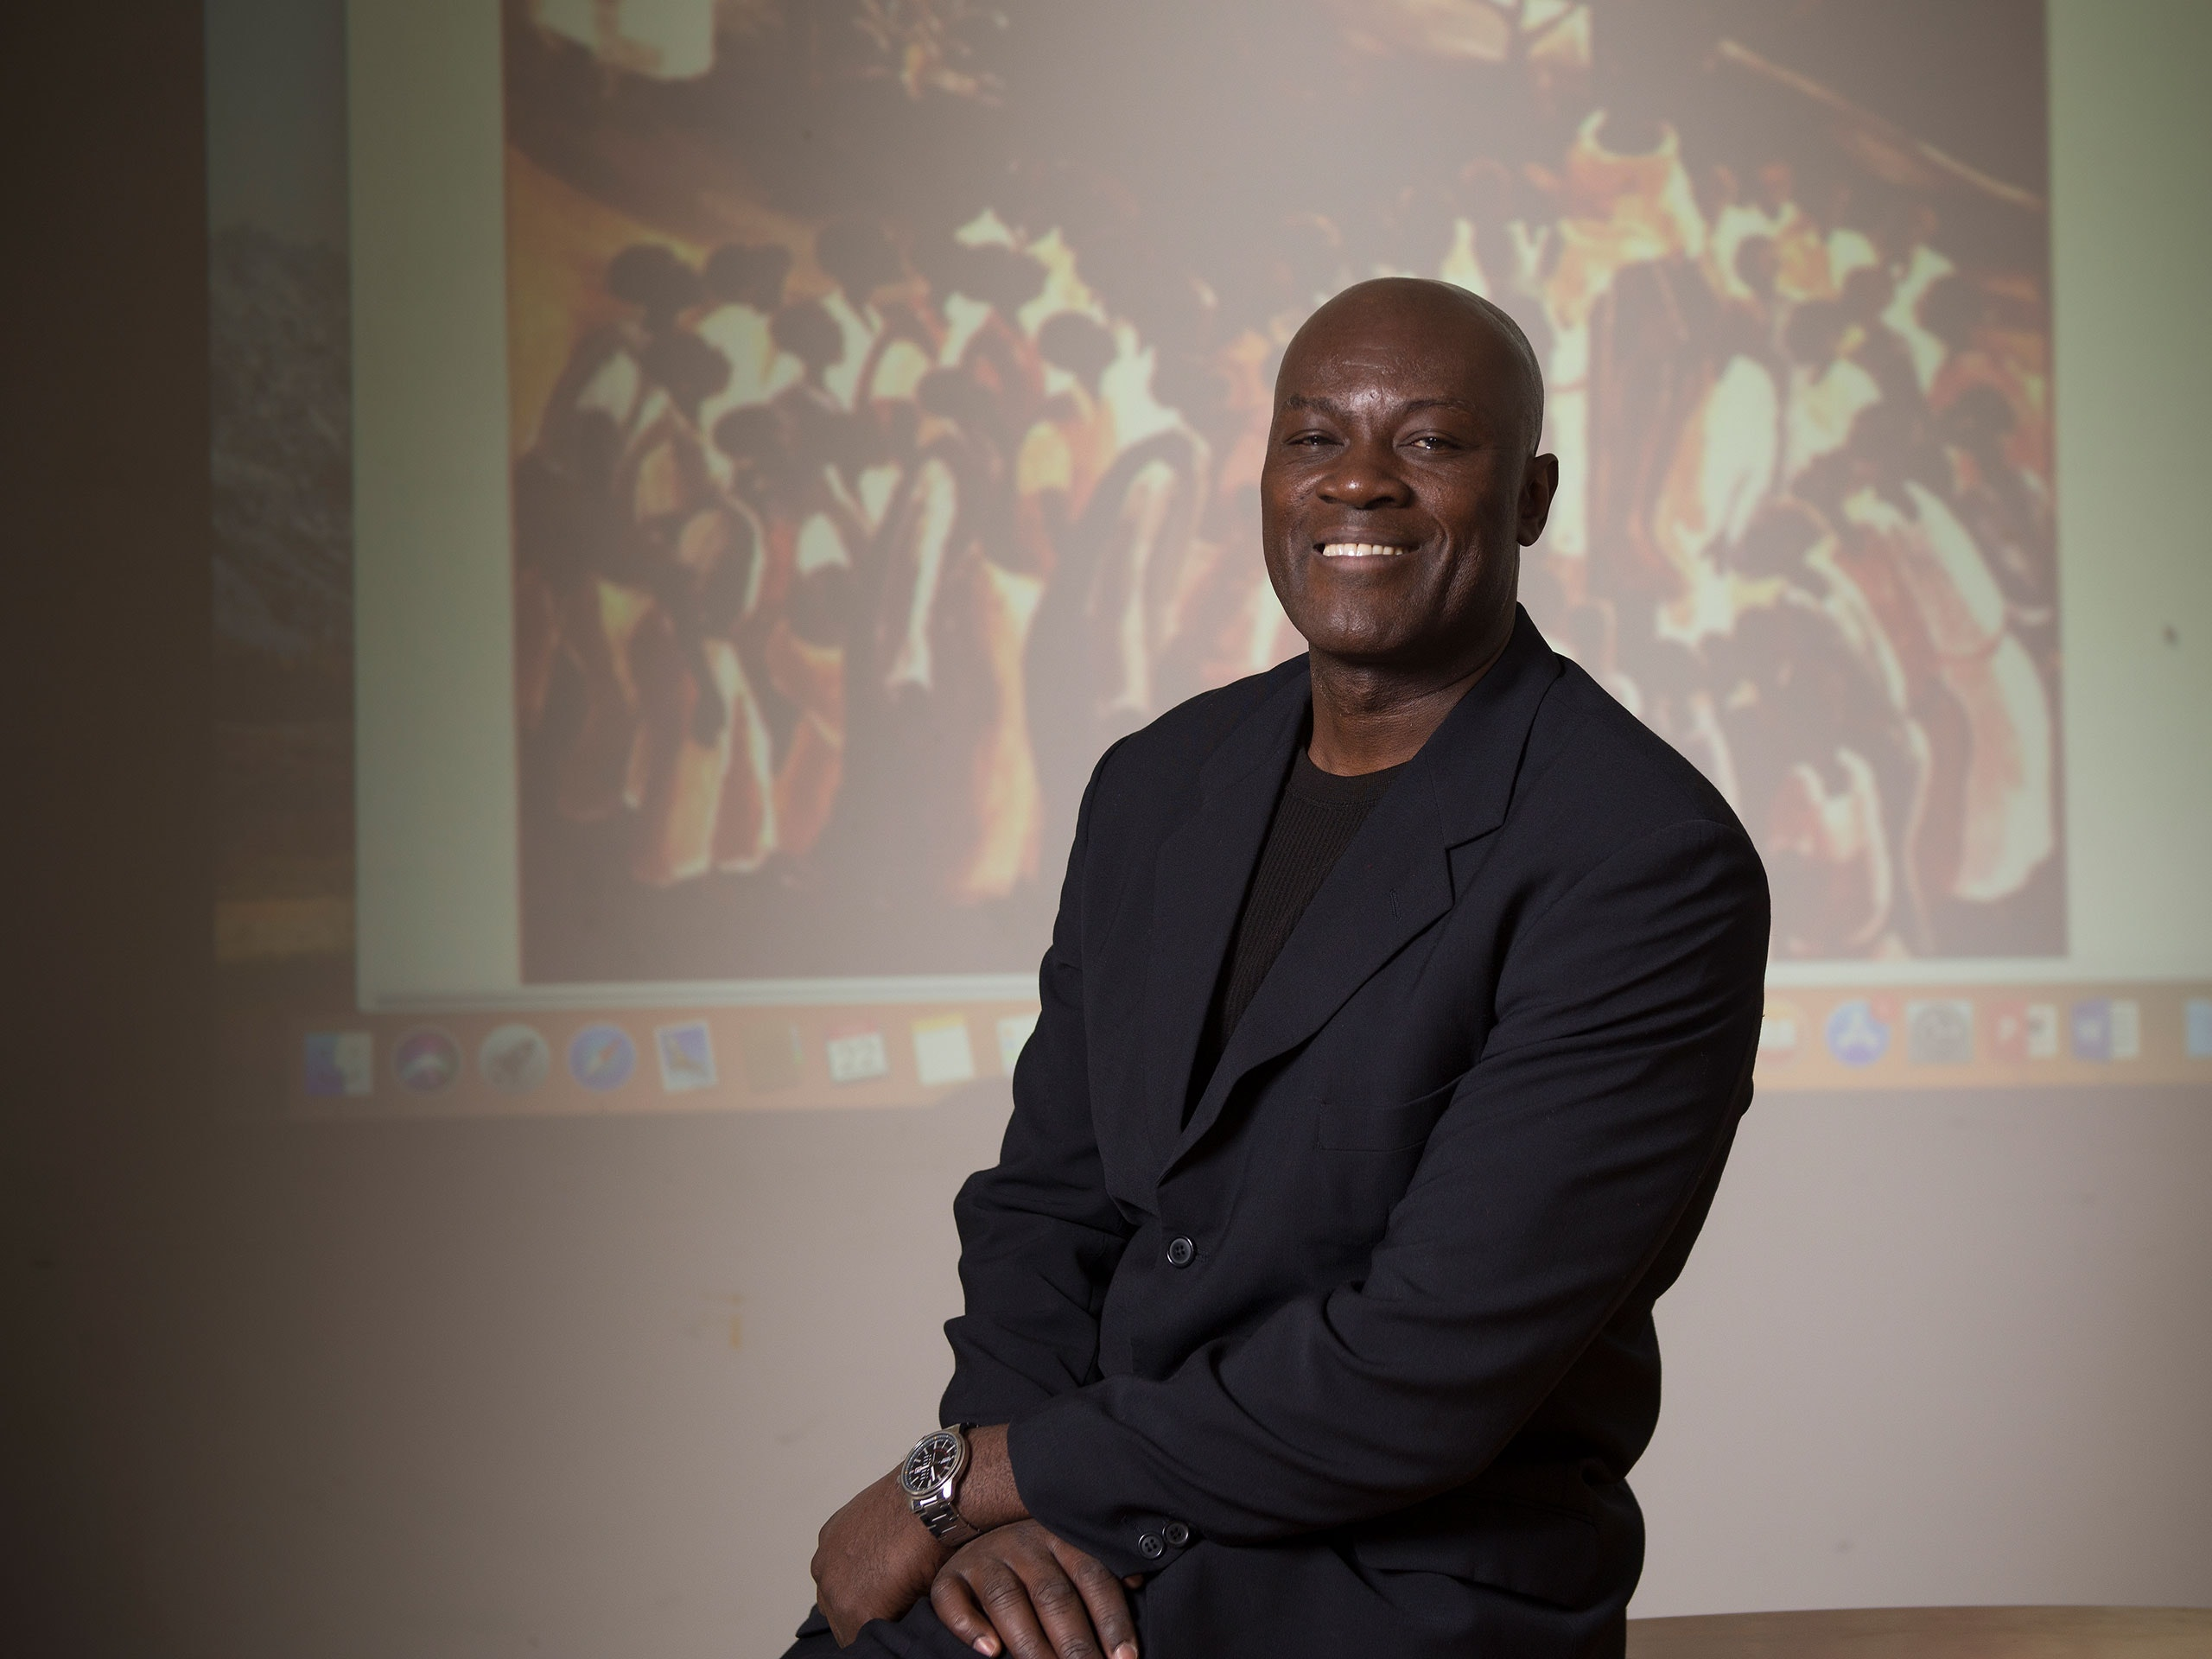 Angelo Kankande posing in front of a projected image.